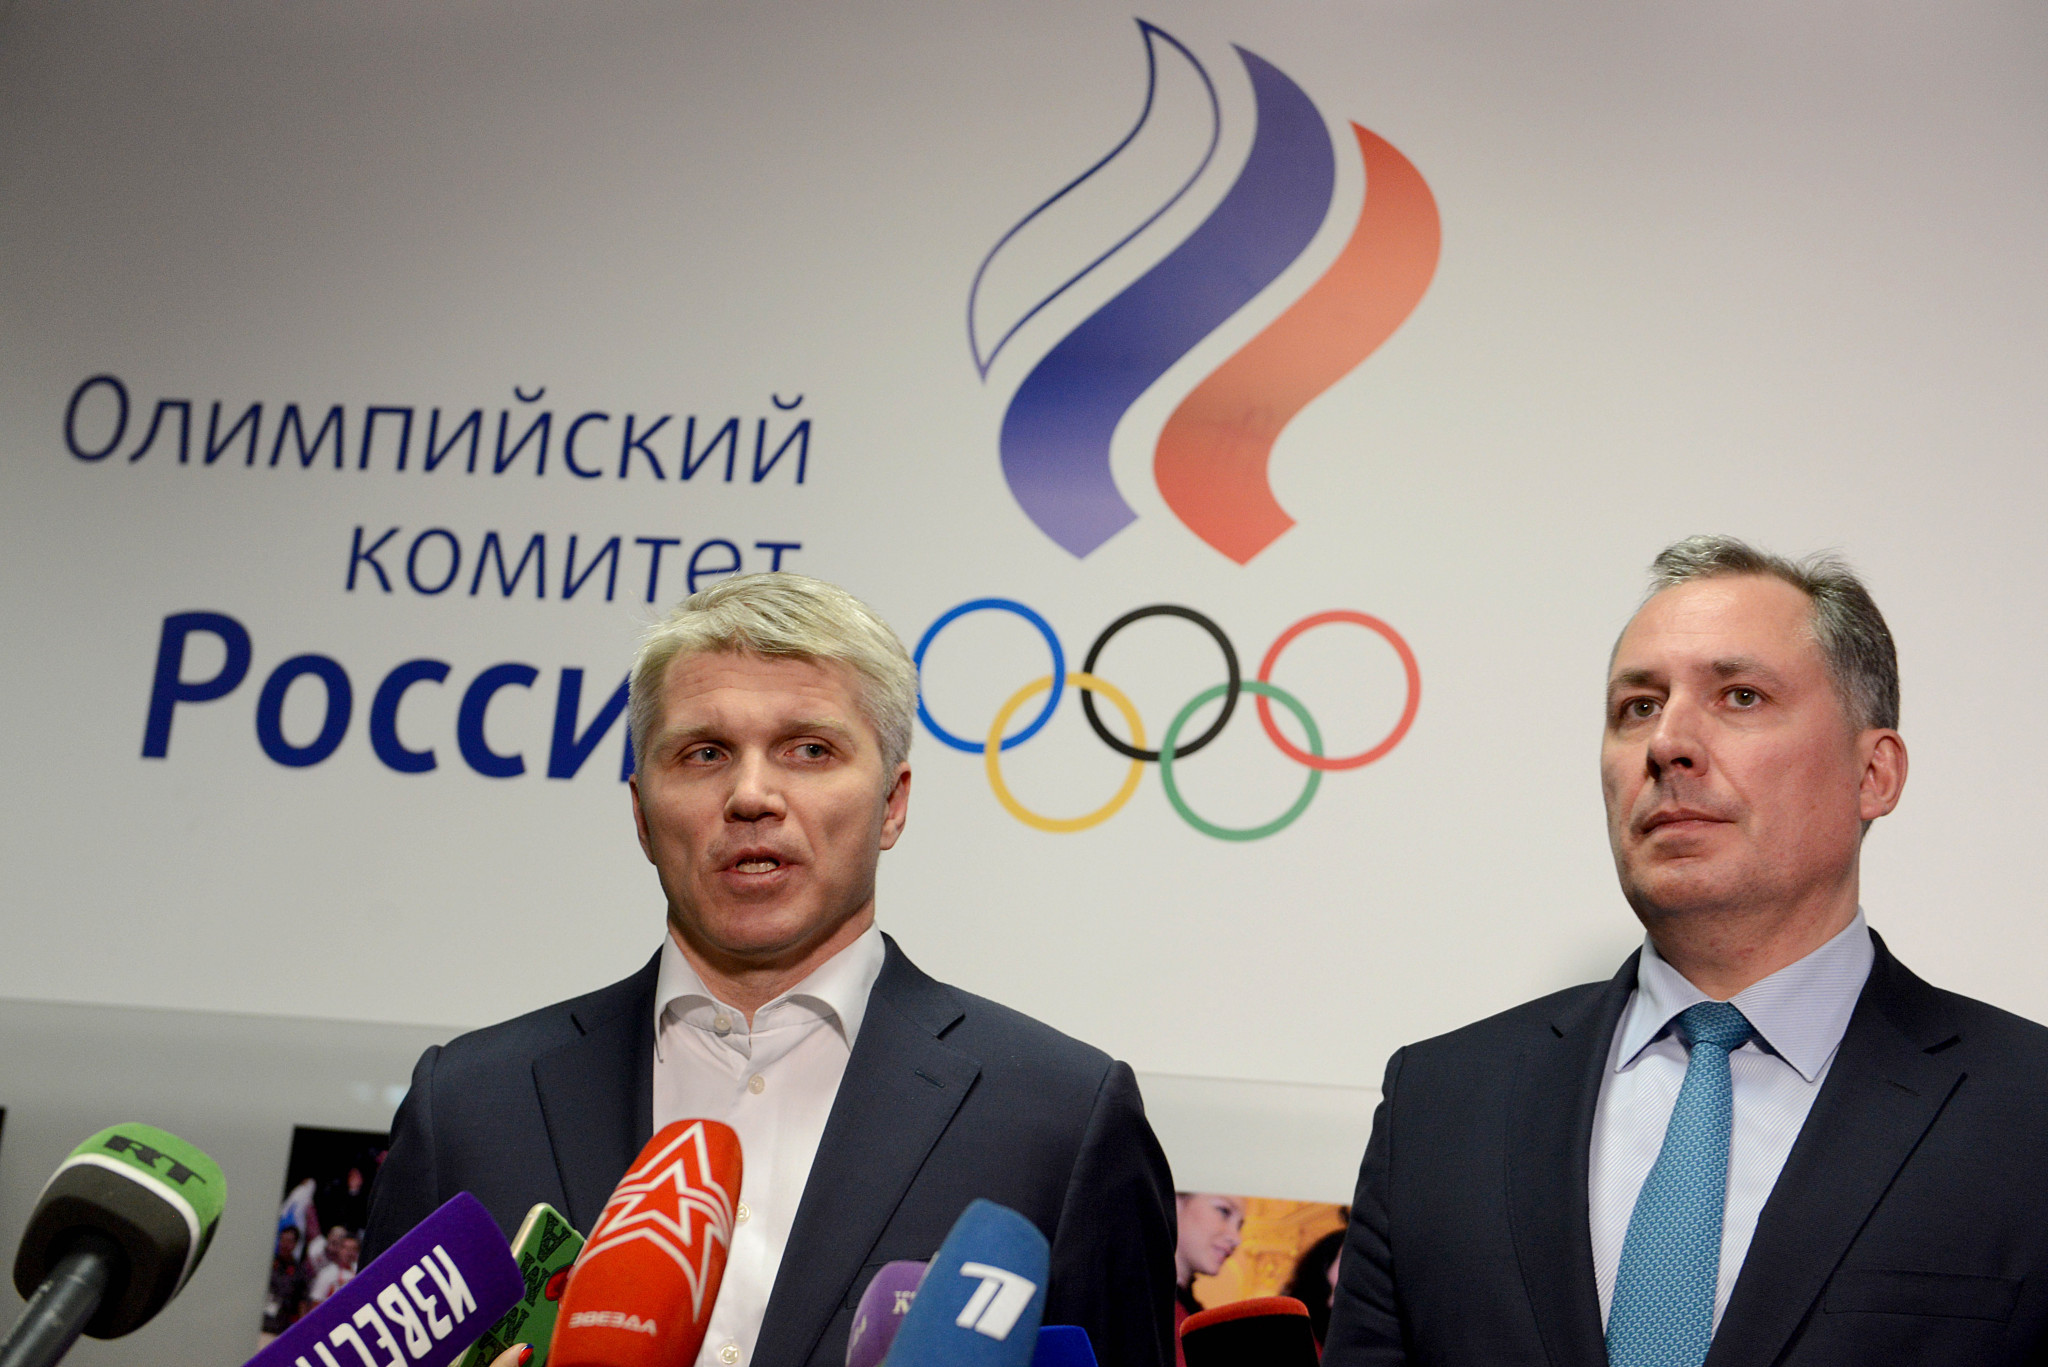 Reeling from doping ban, Moscow blames 'anti-Russian hysteria'